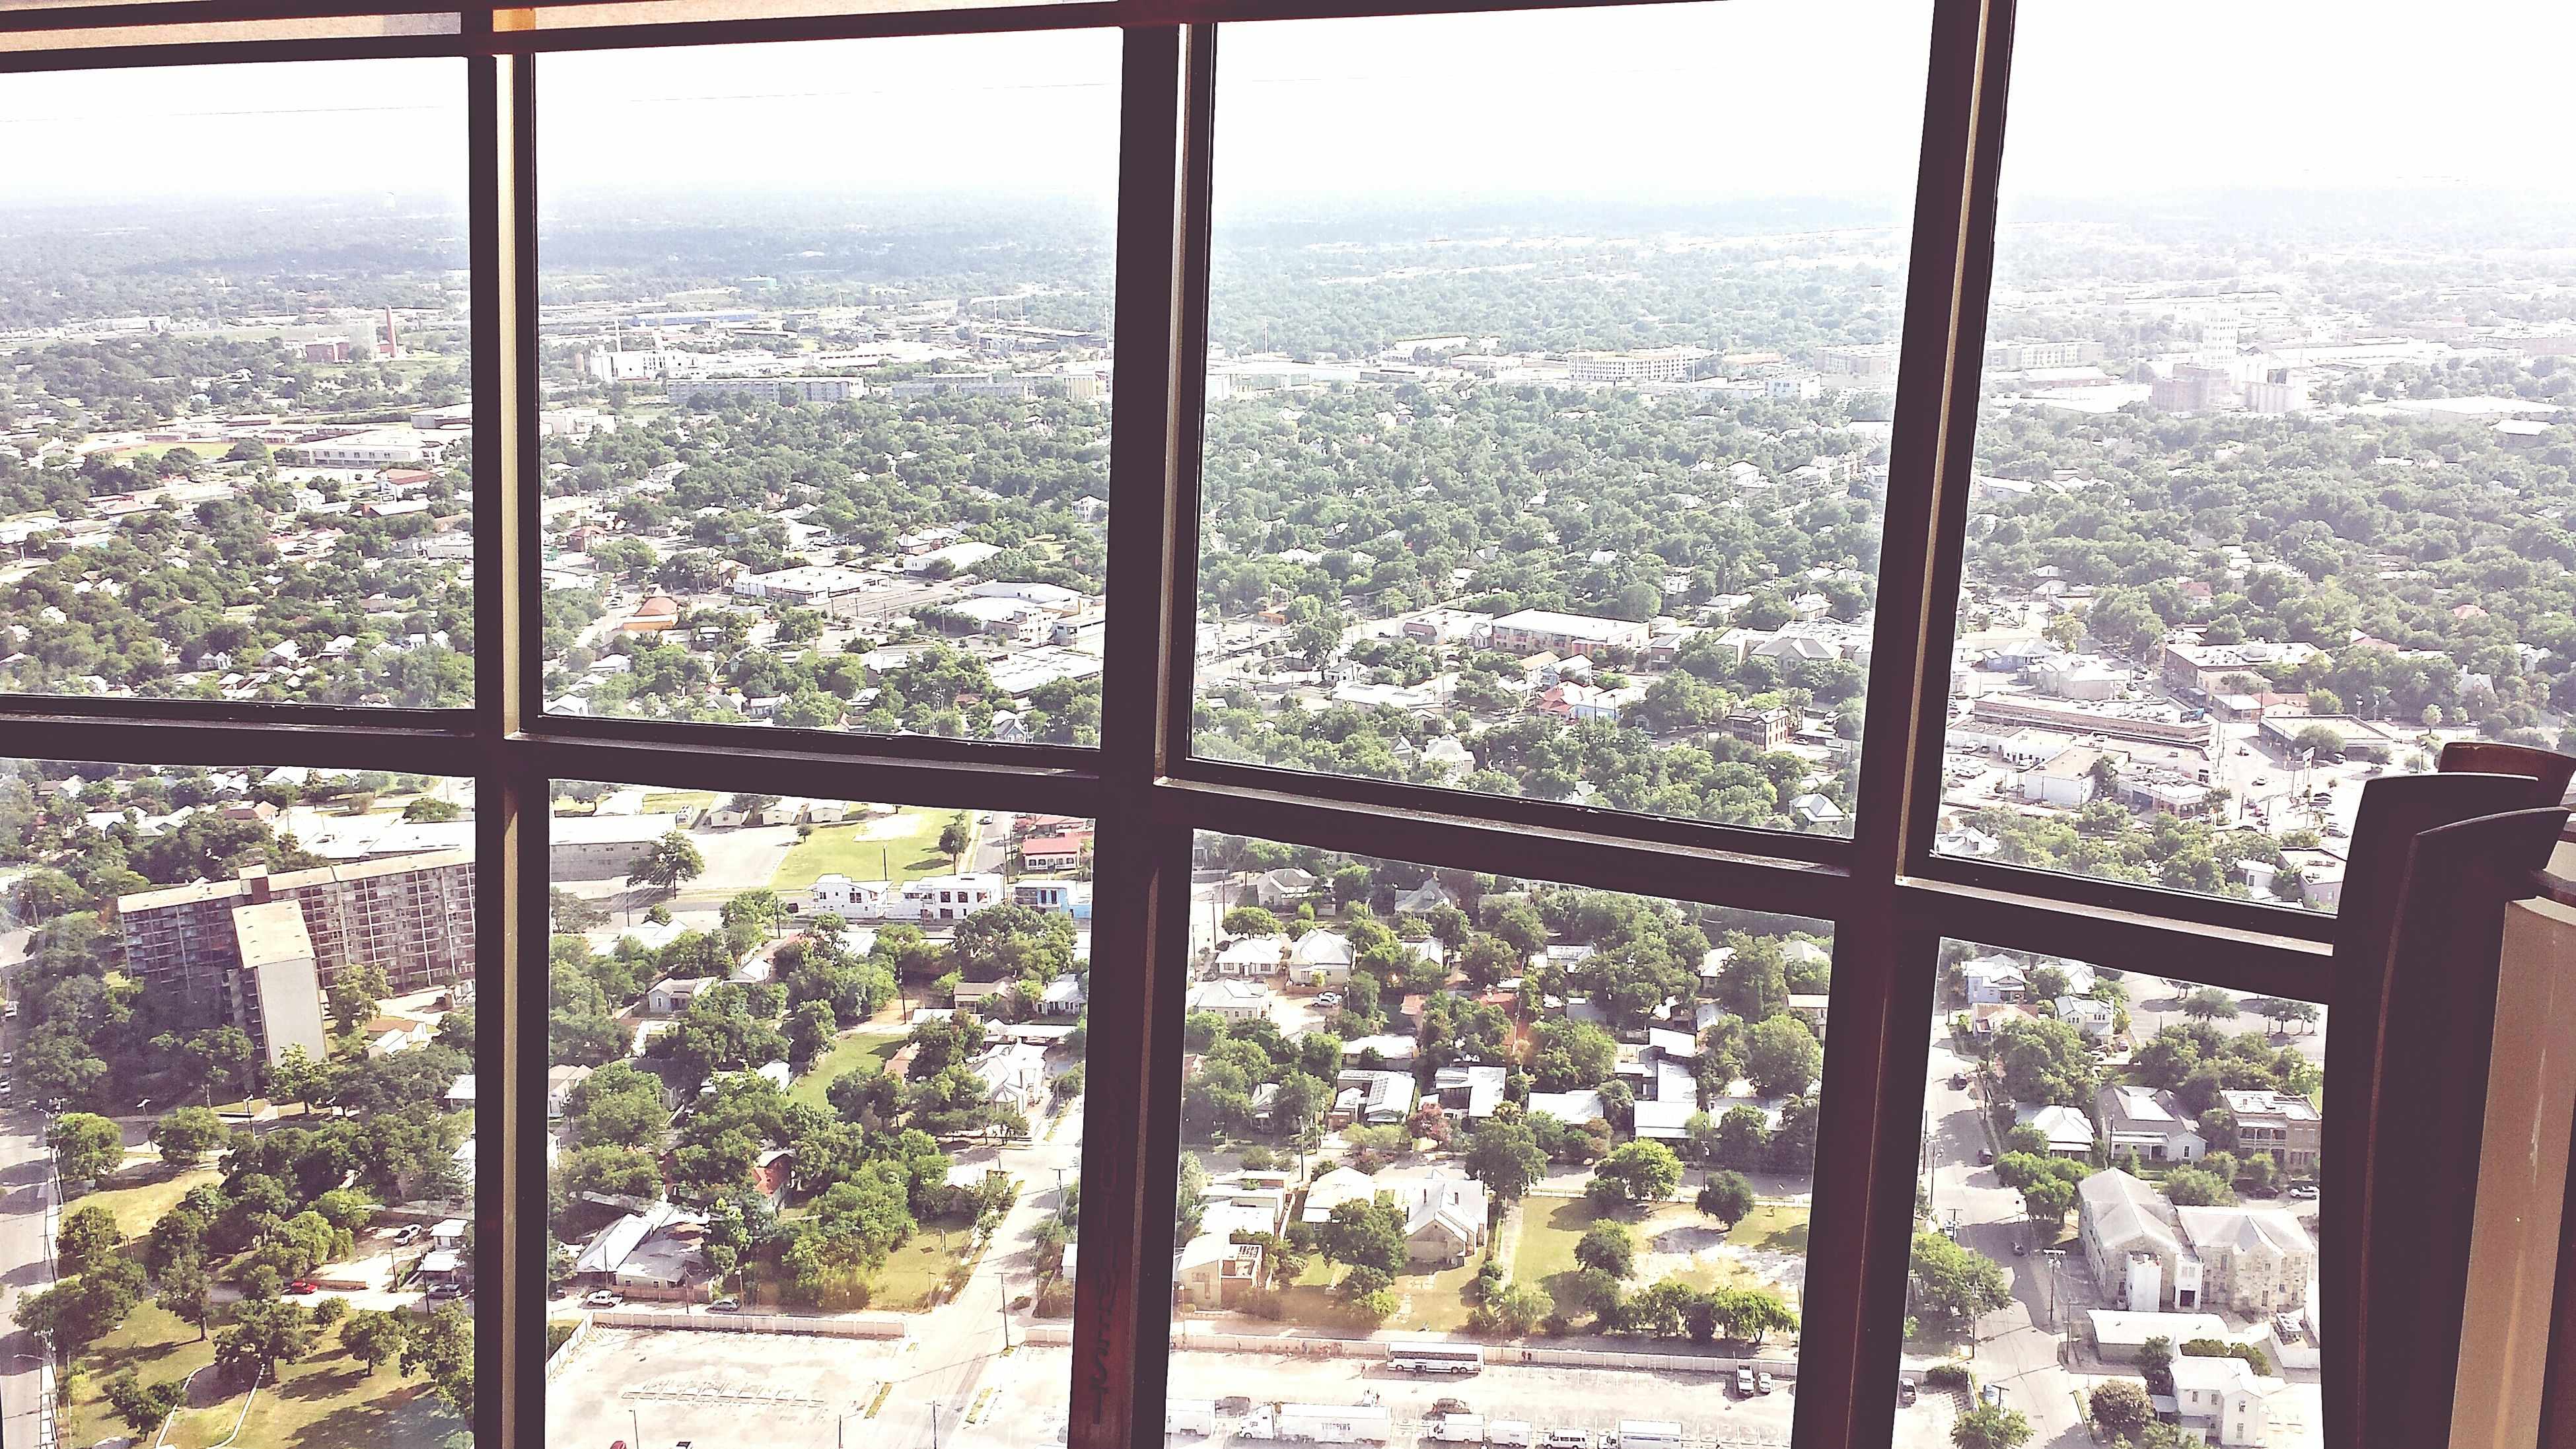 cityscape, city, window, indoors, transparent, architecture, built structure, glass - material, building exterior, crowded, sky, sea, day, high angle view, no people, residential district, glass, residential building, modern, skyscraper